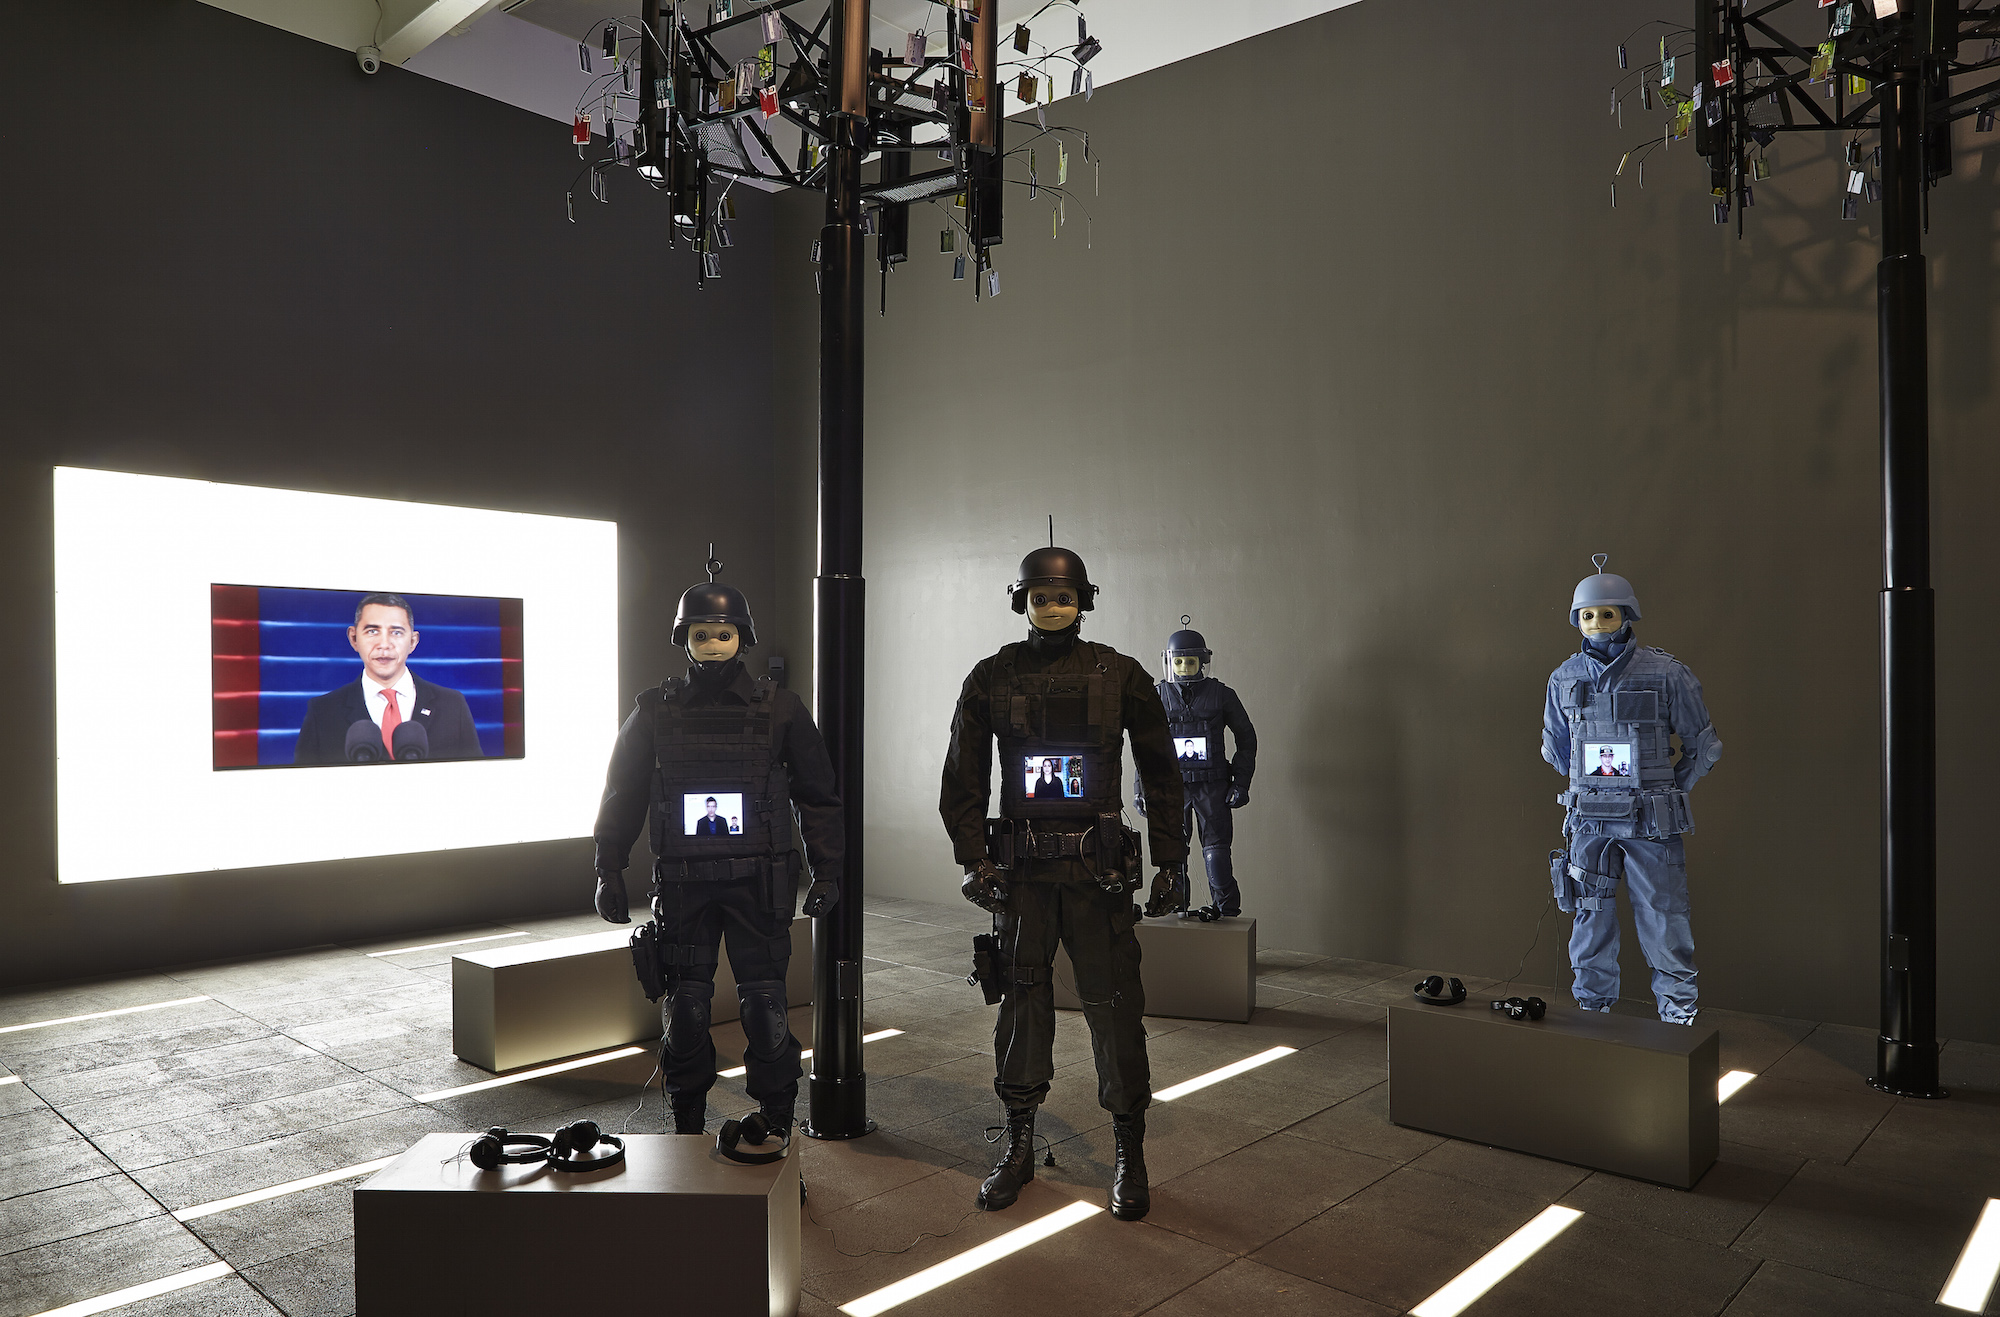 Installation view of Surround Audience featuring Josh Kline. Courtesy of the New Museum. Photo credit: Benoit Pailley